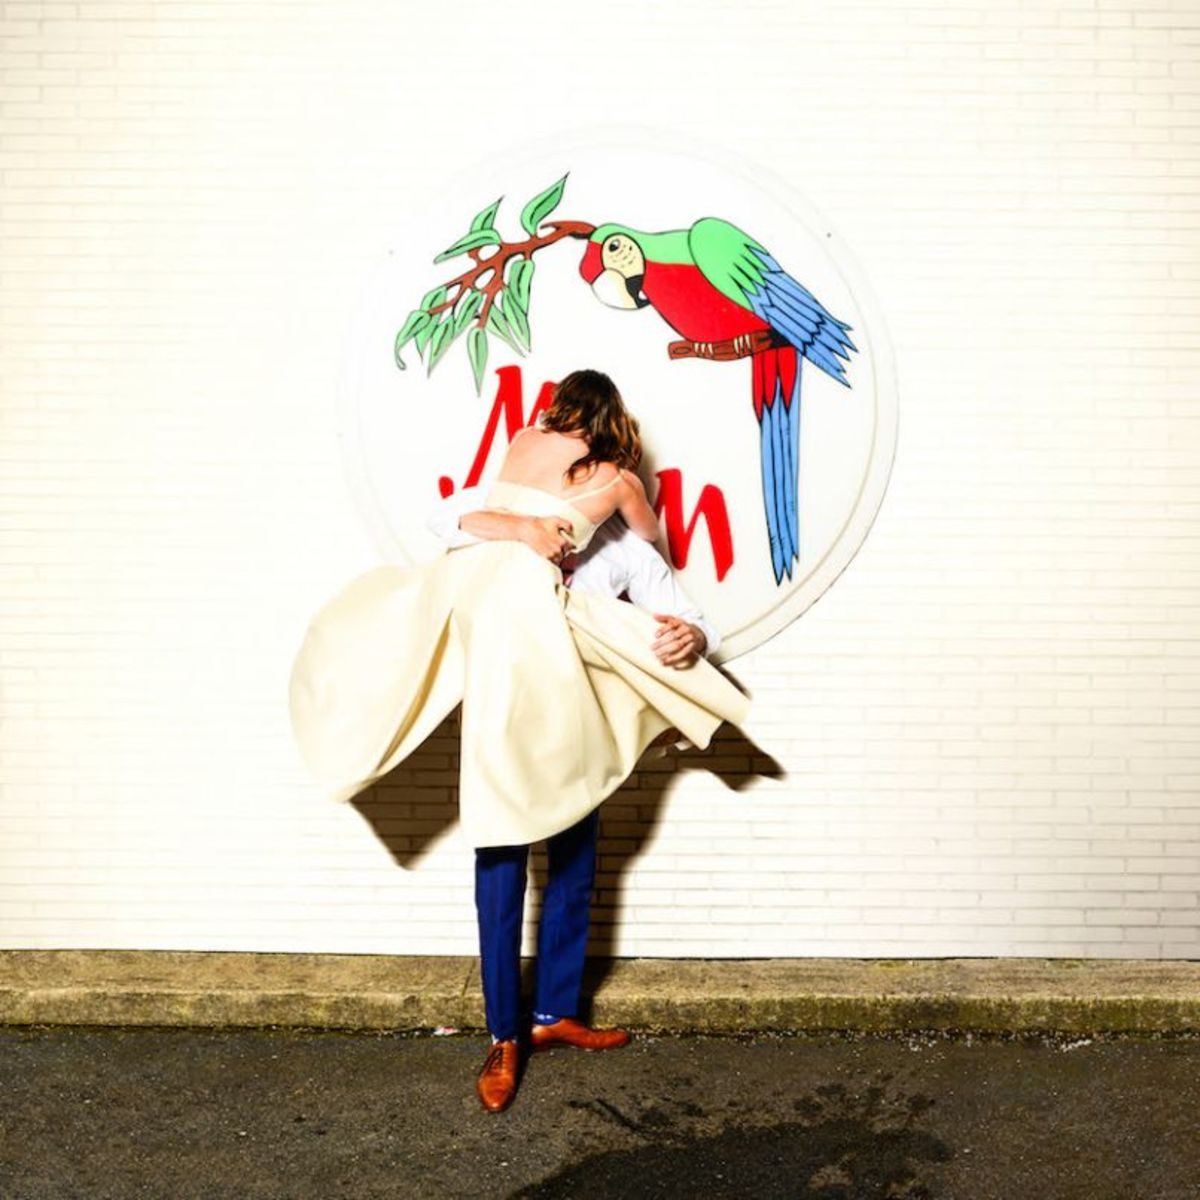 Sylvan Esso's new album cover, out this Friday. Image via